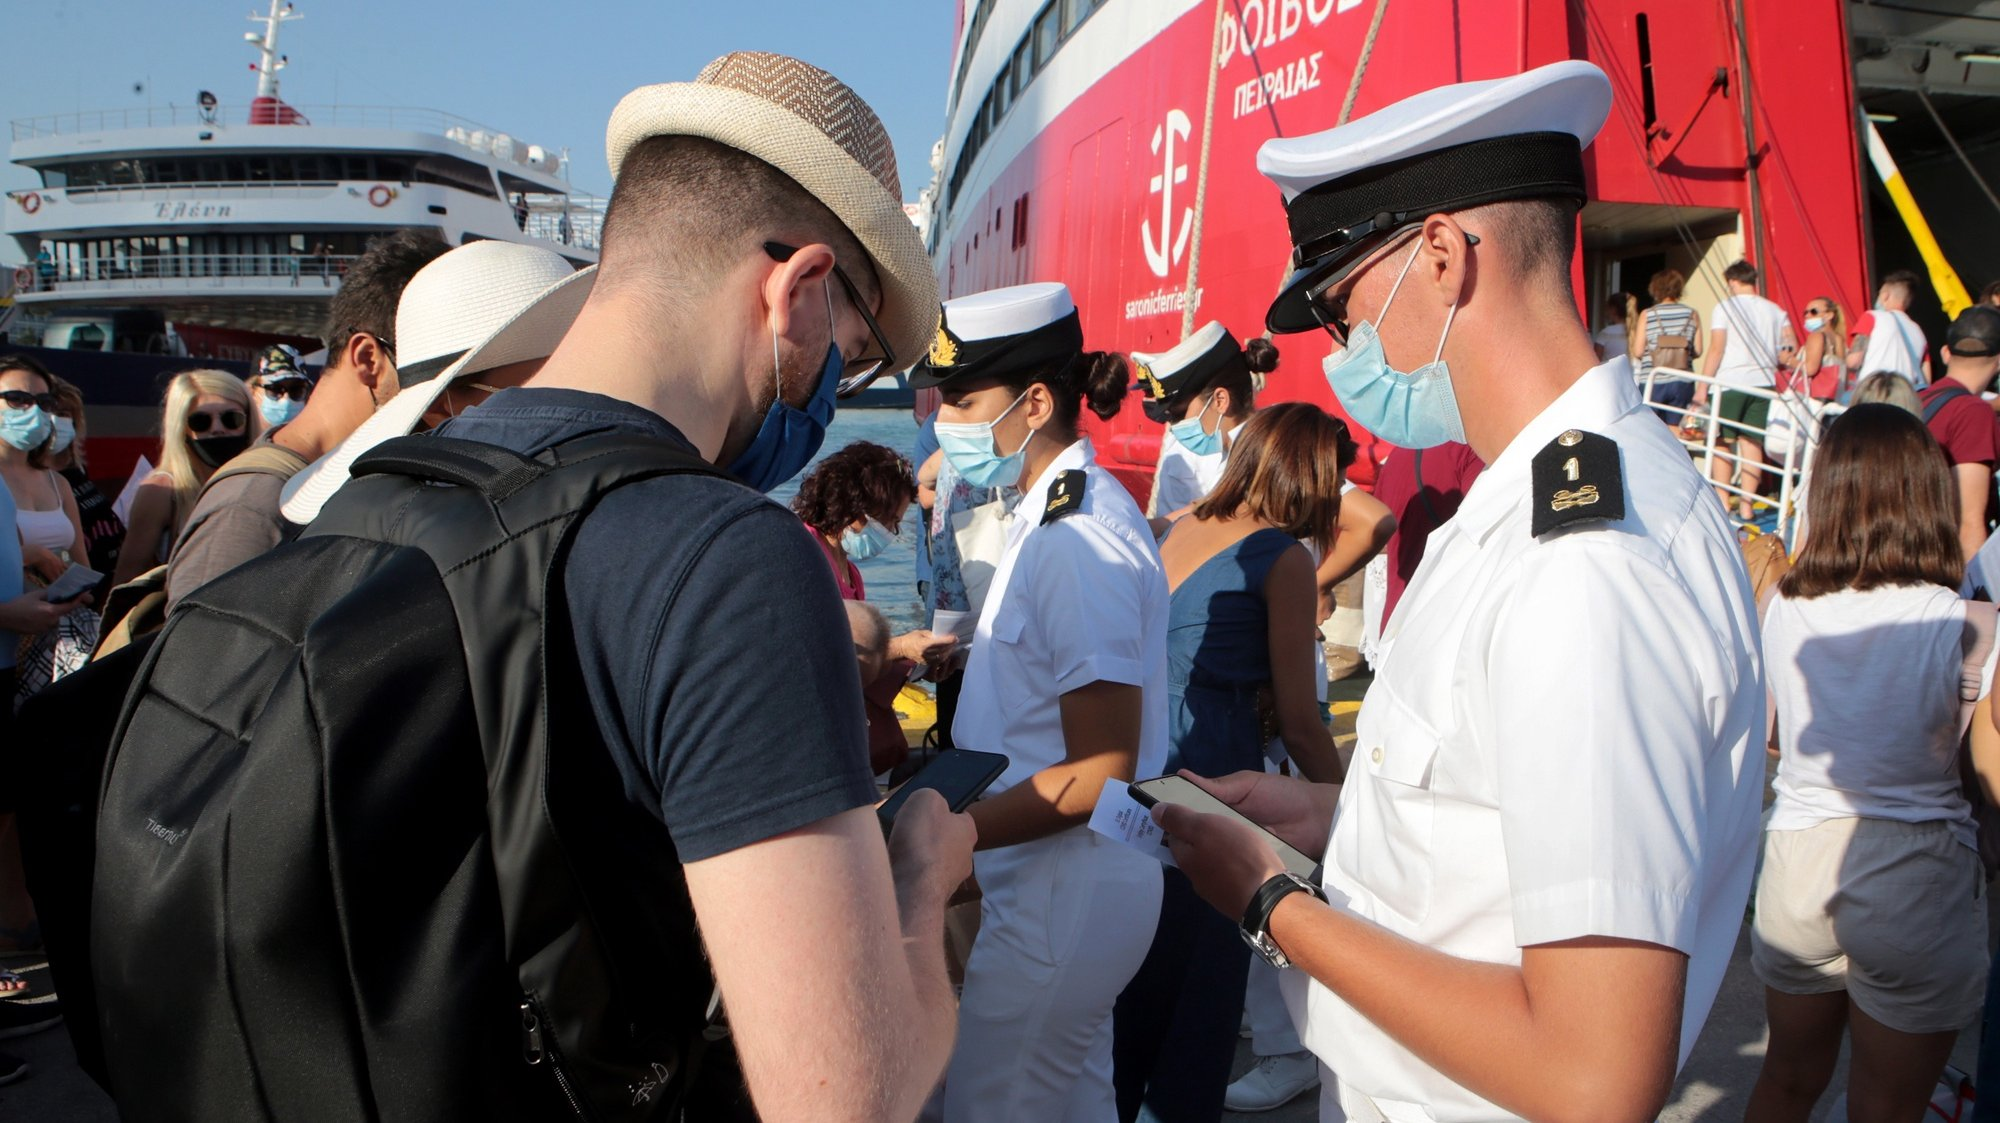 epa09348069 Officers of the Hellenic Coast Guard check passengers documents at the port of Piraeus, near Athens, Greece, 16 July 2021. The Hellenic Coast Guard take over the checks that passengers boarding ships comply with Covid rules as of July 16th, according to a decision made by Greek Shipping and Island Policy Minister Yiannis Plakiotakis with the coast guard leadership. Minister said this will ensure that checks are thorough and vouchsafe the maximum possible protection of the passengers' health.  EPA/PANTELIS SAITAS